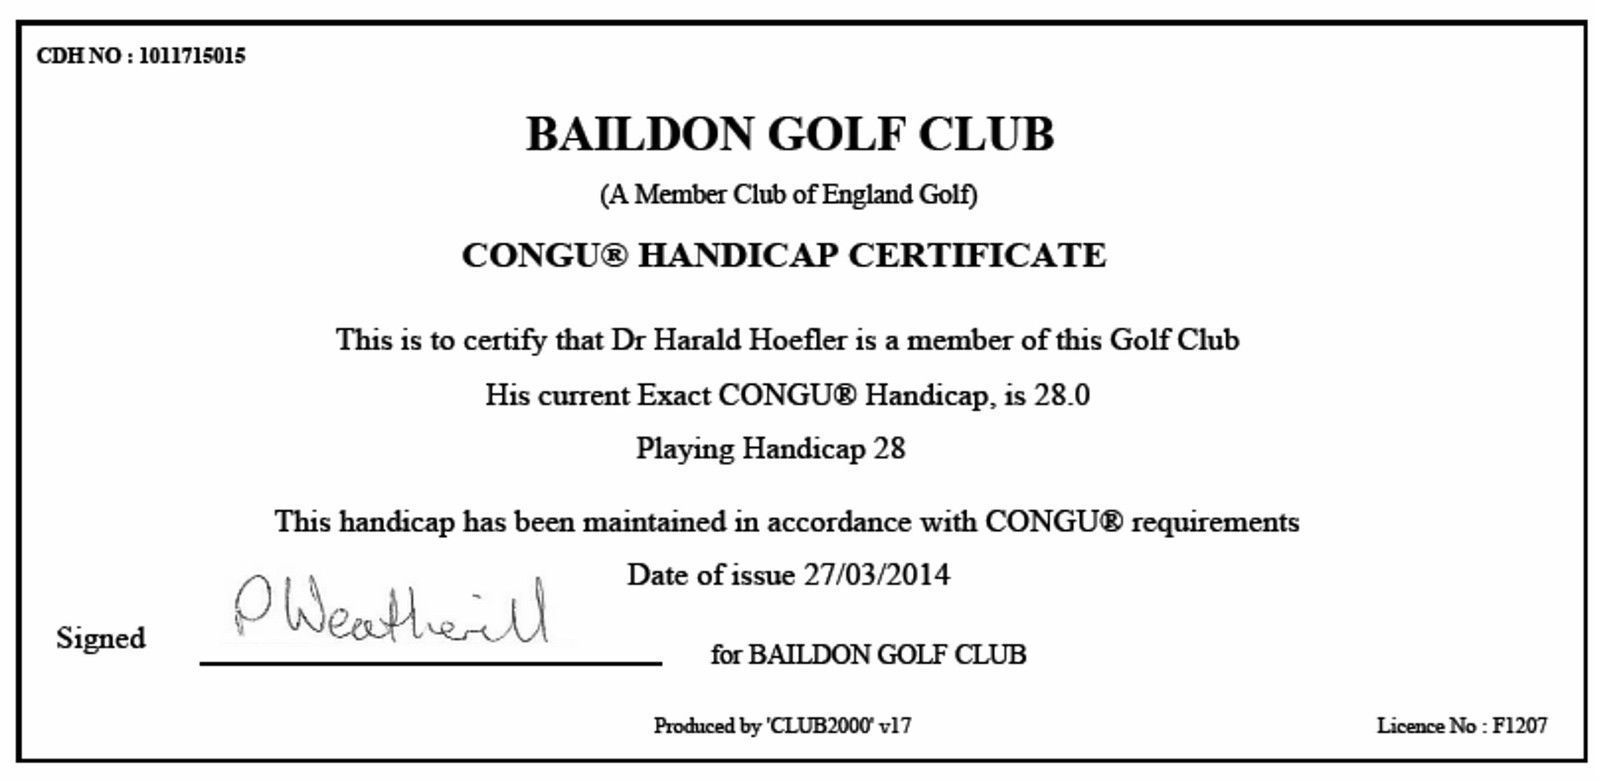 Golf handicap certificate template gallery templates example excellent golf certificate templates gallery resume ideas golf handicap certificate template image collections templates alramifo gallery alramifo Choice Image